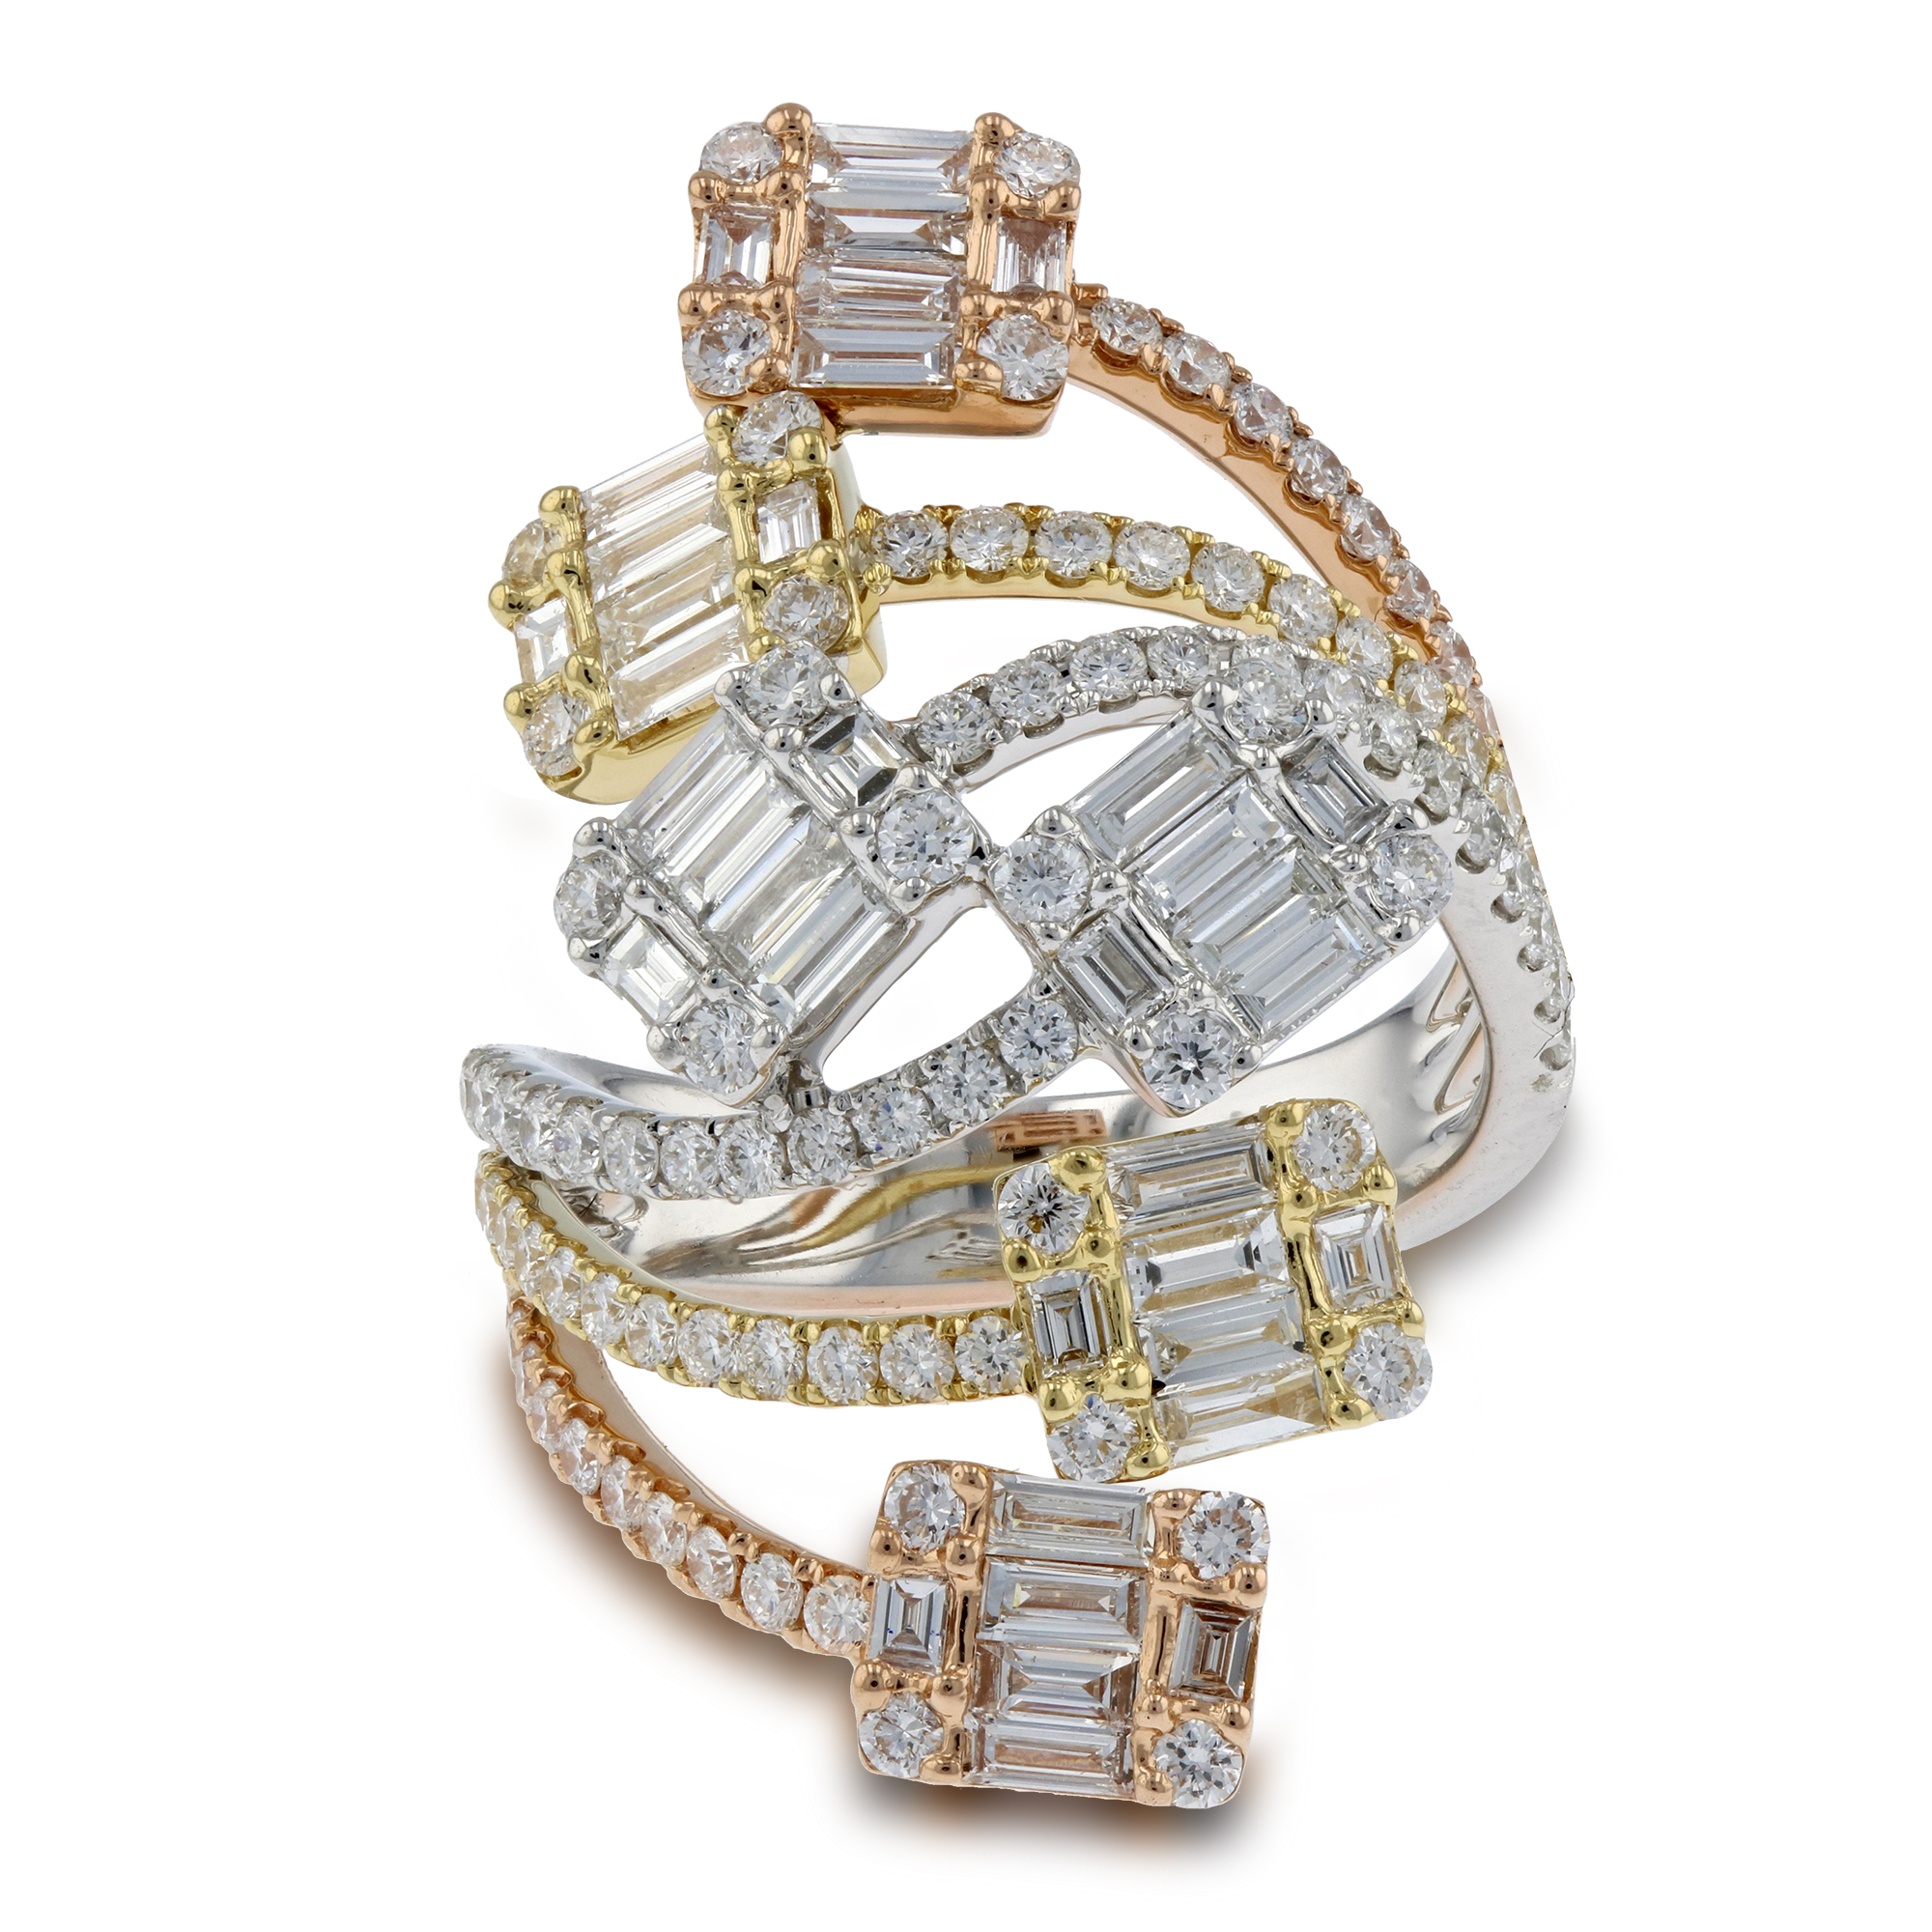 View 2.58ctw Diamond Fashiom Ring in 18k Gold